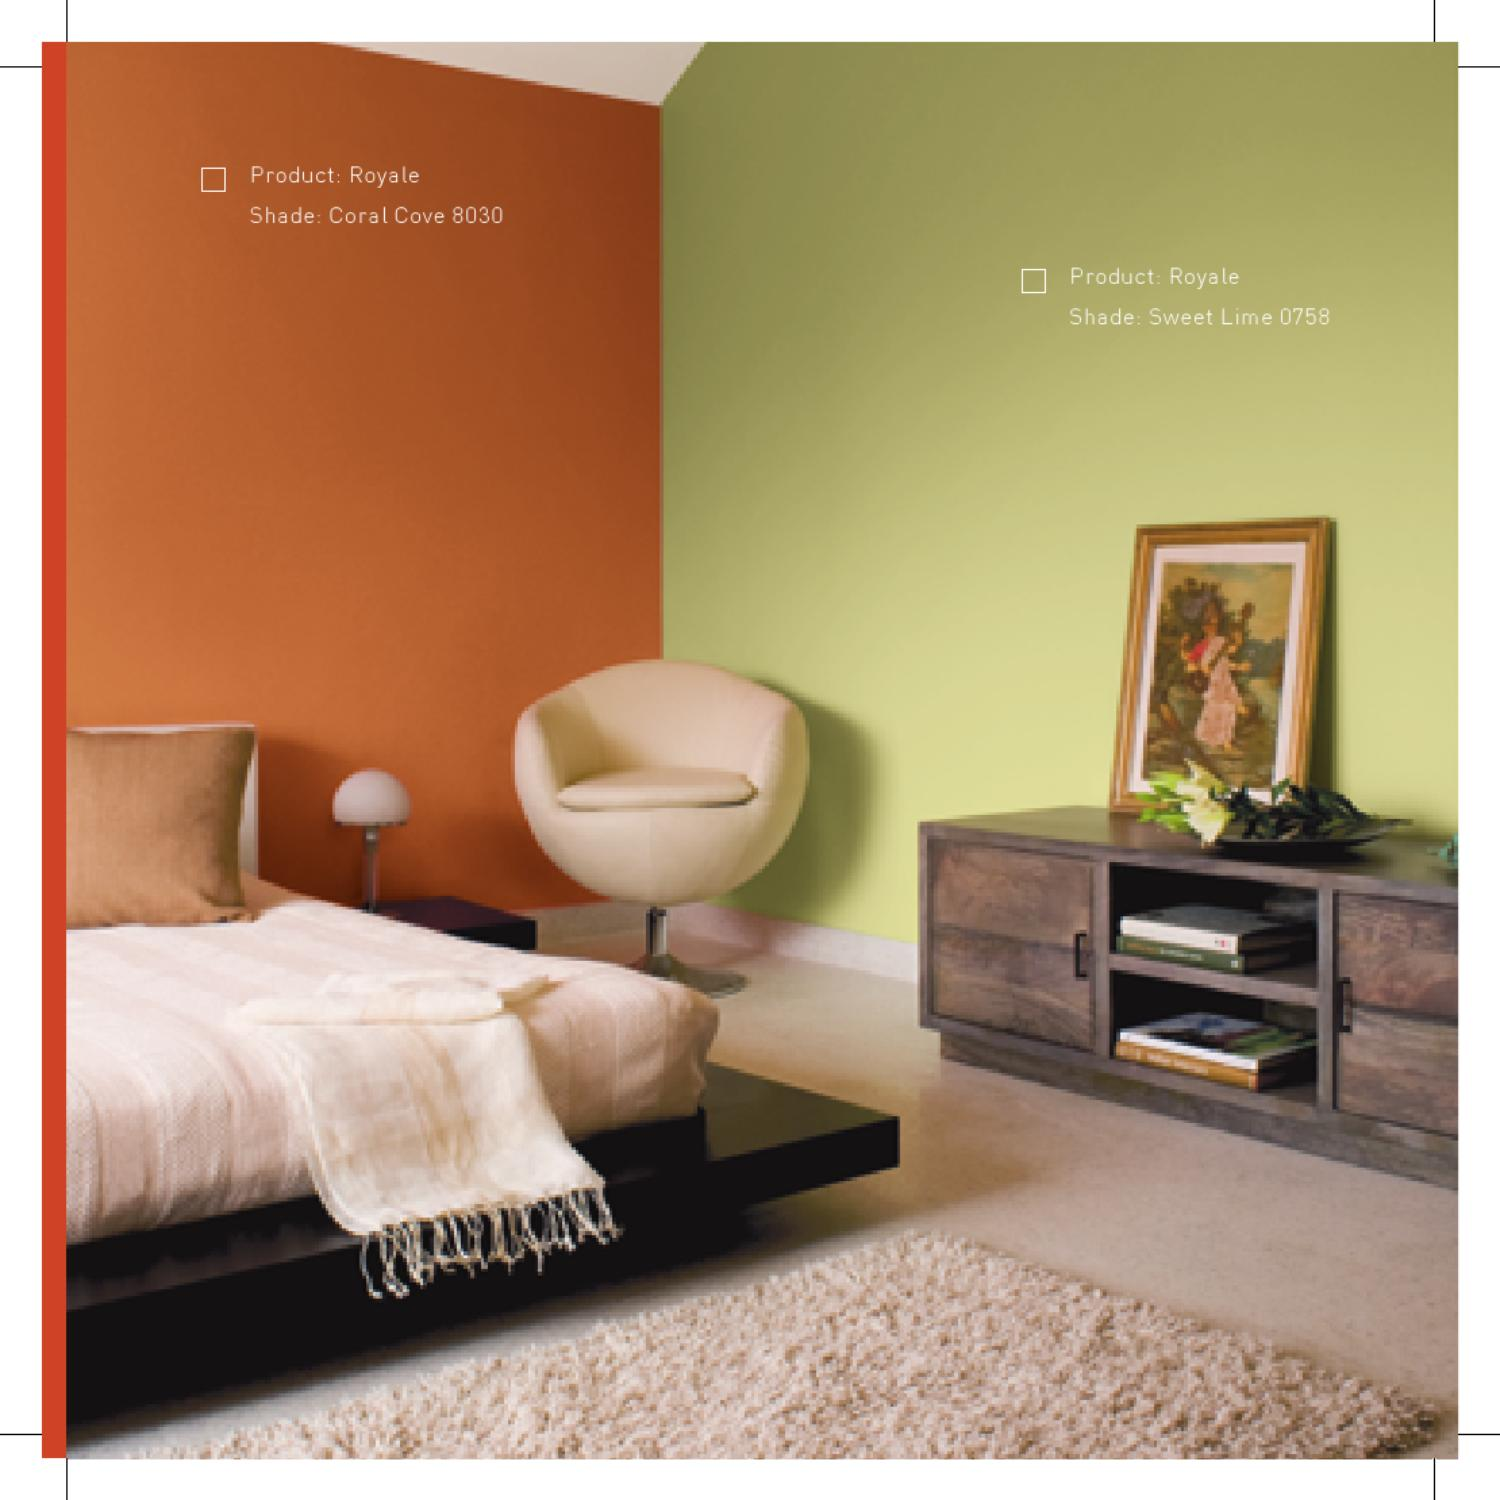 Ideas on decor book web by asian paints limited issuu for Asian paints home decoration